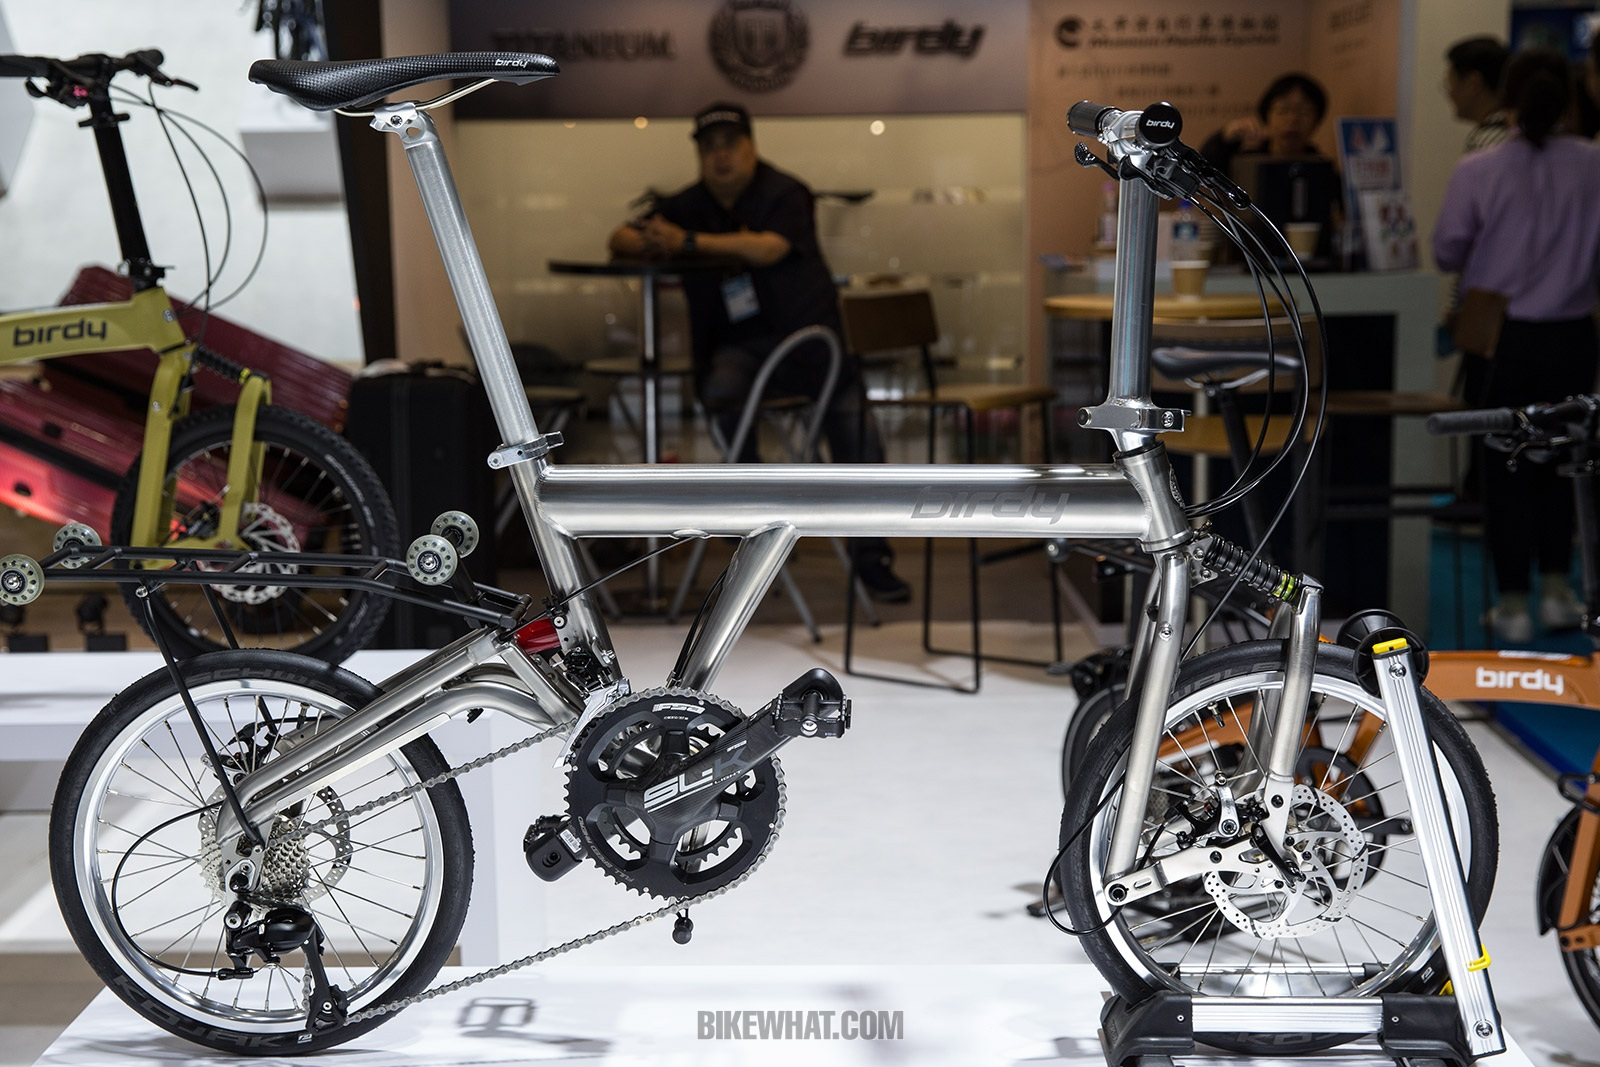 Feature_TaipeiCycle_2019_Birdy Ti.jpg